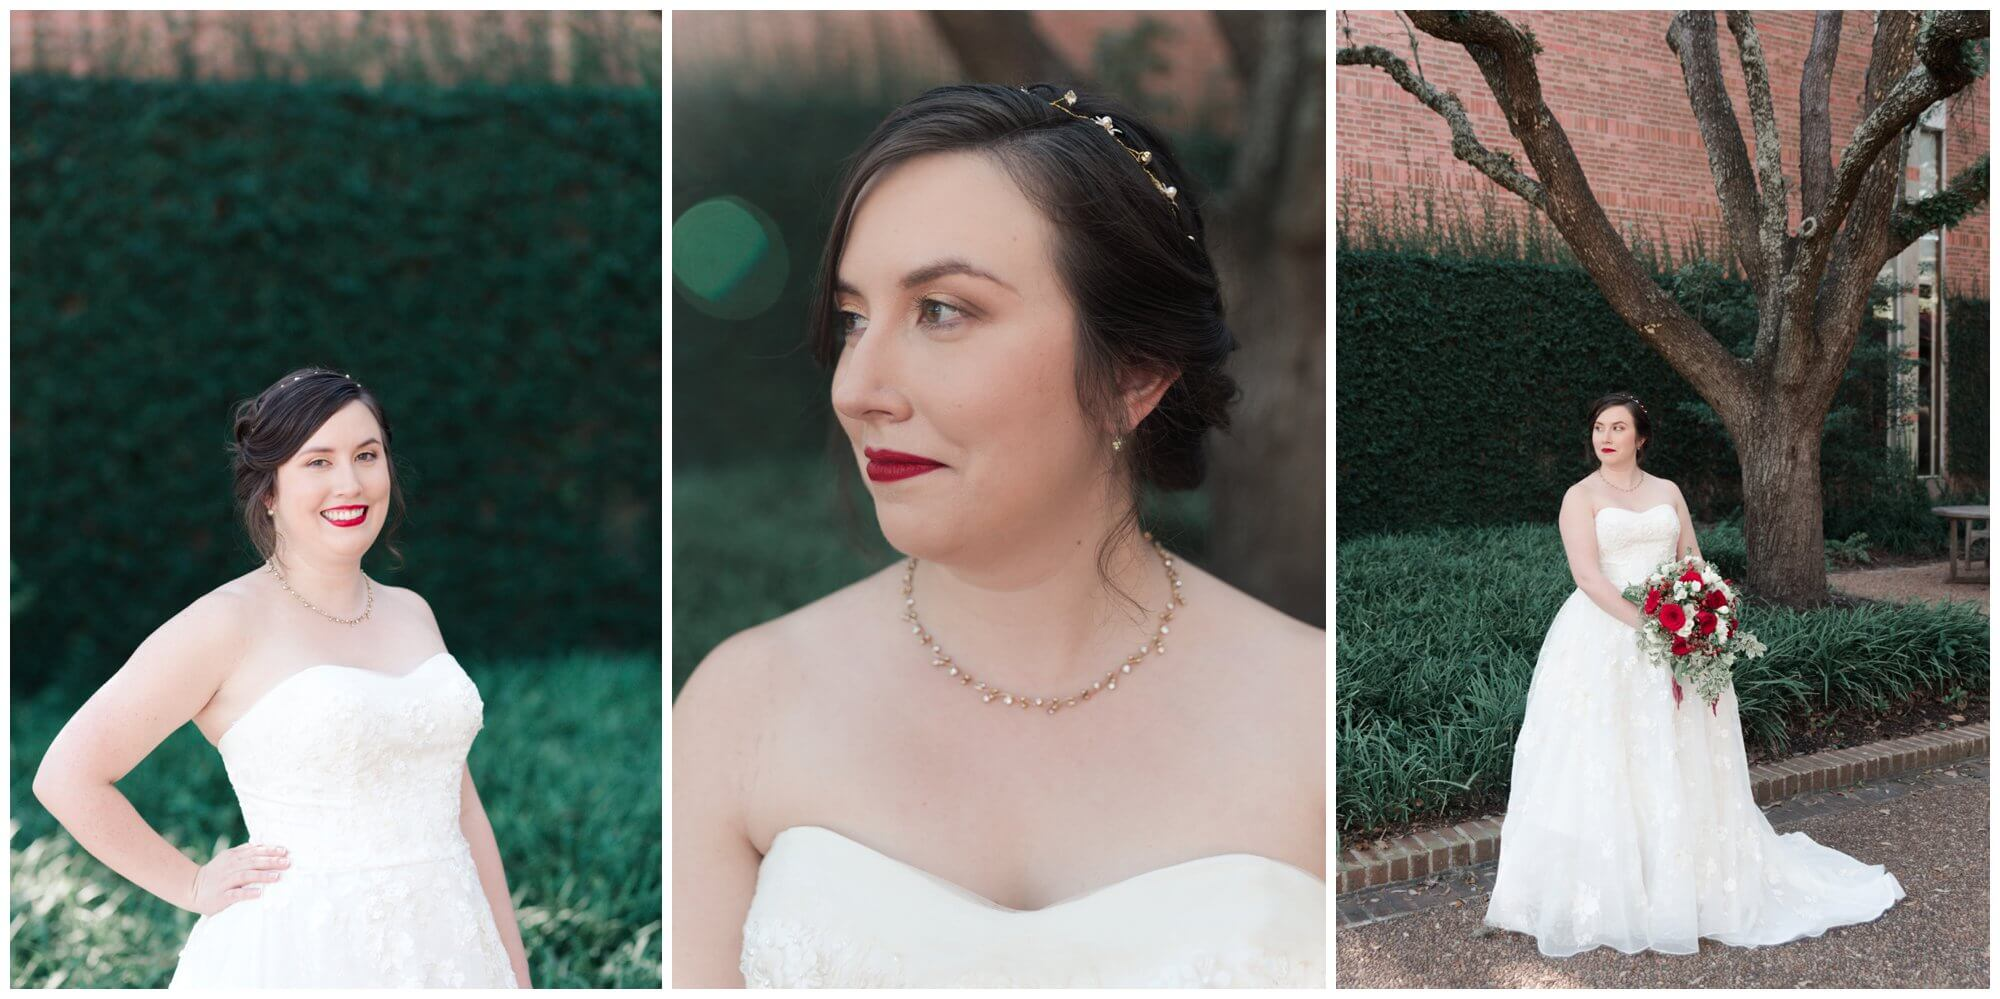 bridal portraits at Rice University in Houston Texas by Swish and Click Photography